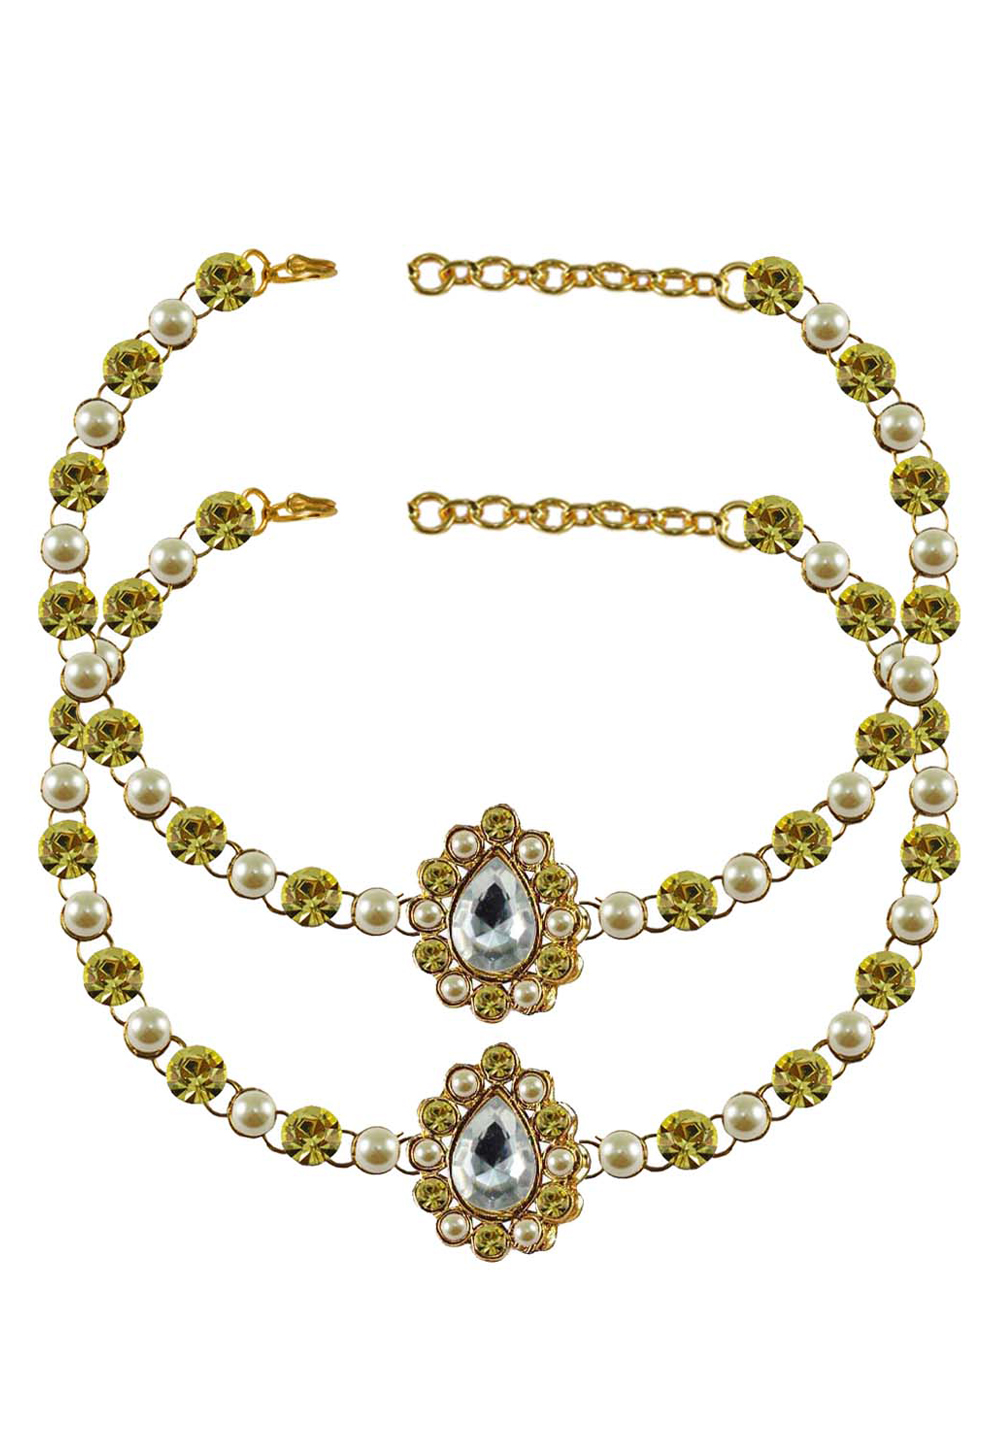 Shaded Green Brass Gold Plated Anklets 171338